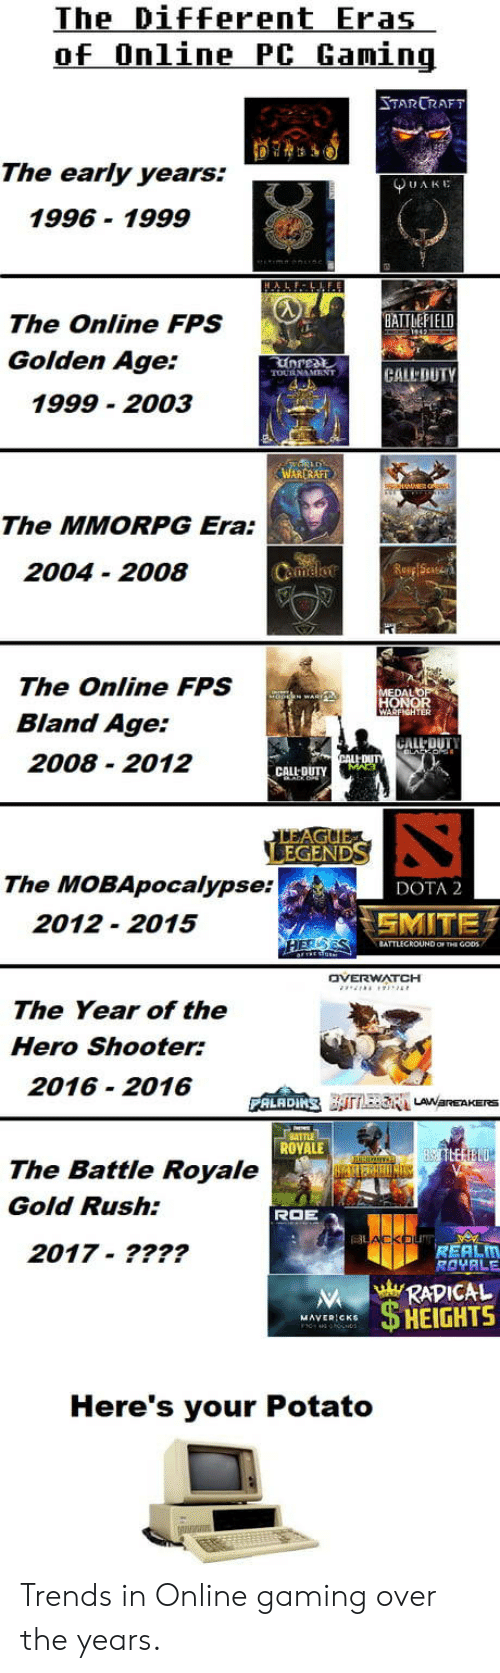 golden age: The Different Eras  of Online PC Gamin  TARCRAFT  The early years.  UAKE  1996- 1999  BATTEFIELD  The Online FPS  Golden Age:  1999 2003  AR  The MMORPG Era:  2004 - 2008  The Online FPS  Bland Age:  2008 2012  ER  CALL DUTY  The MOBApocalypse:  DOTA 2  2012-2015  MITE  TTLECROUND OF THE GOD  OVERWATCH  The Year of the  Hero Shooter:  2016 2016D E  ROVALE  The Battle Royale  Gold Rush:  2017-????  REALM  RAVALE  RADICAL  HEIGHTS  Here's your Potato Trends in Online gaming over the years.